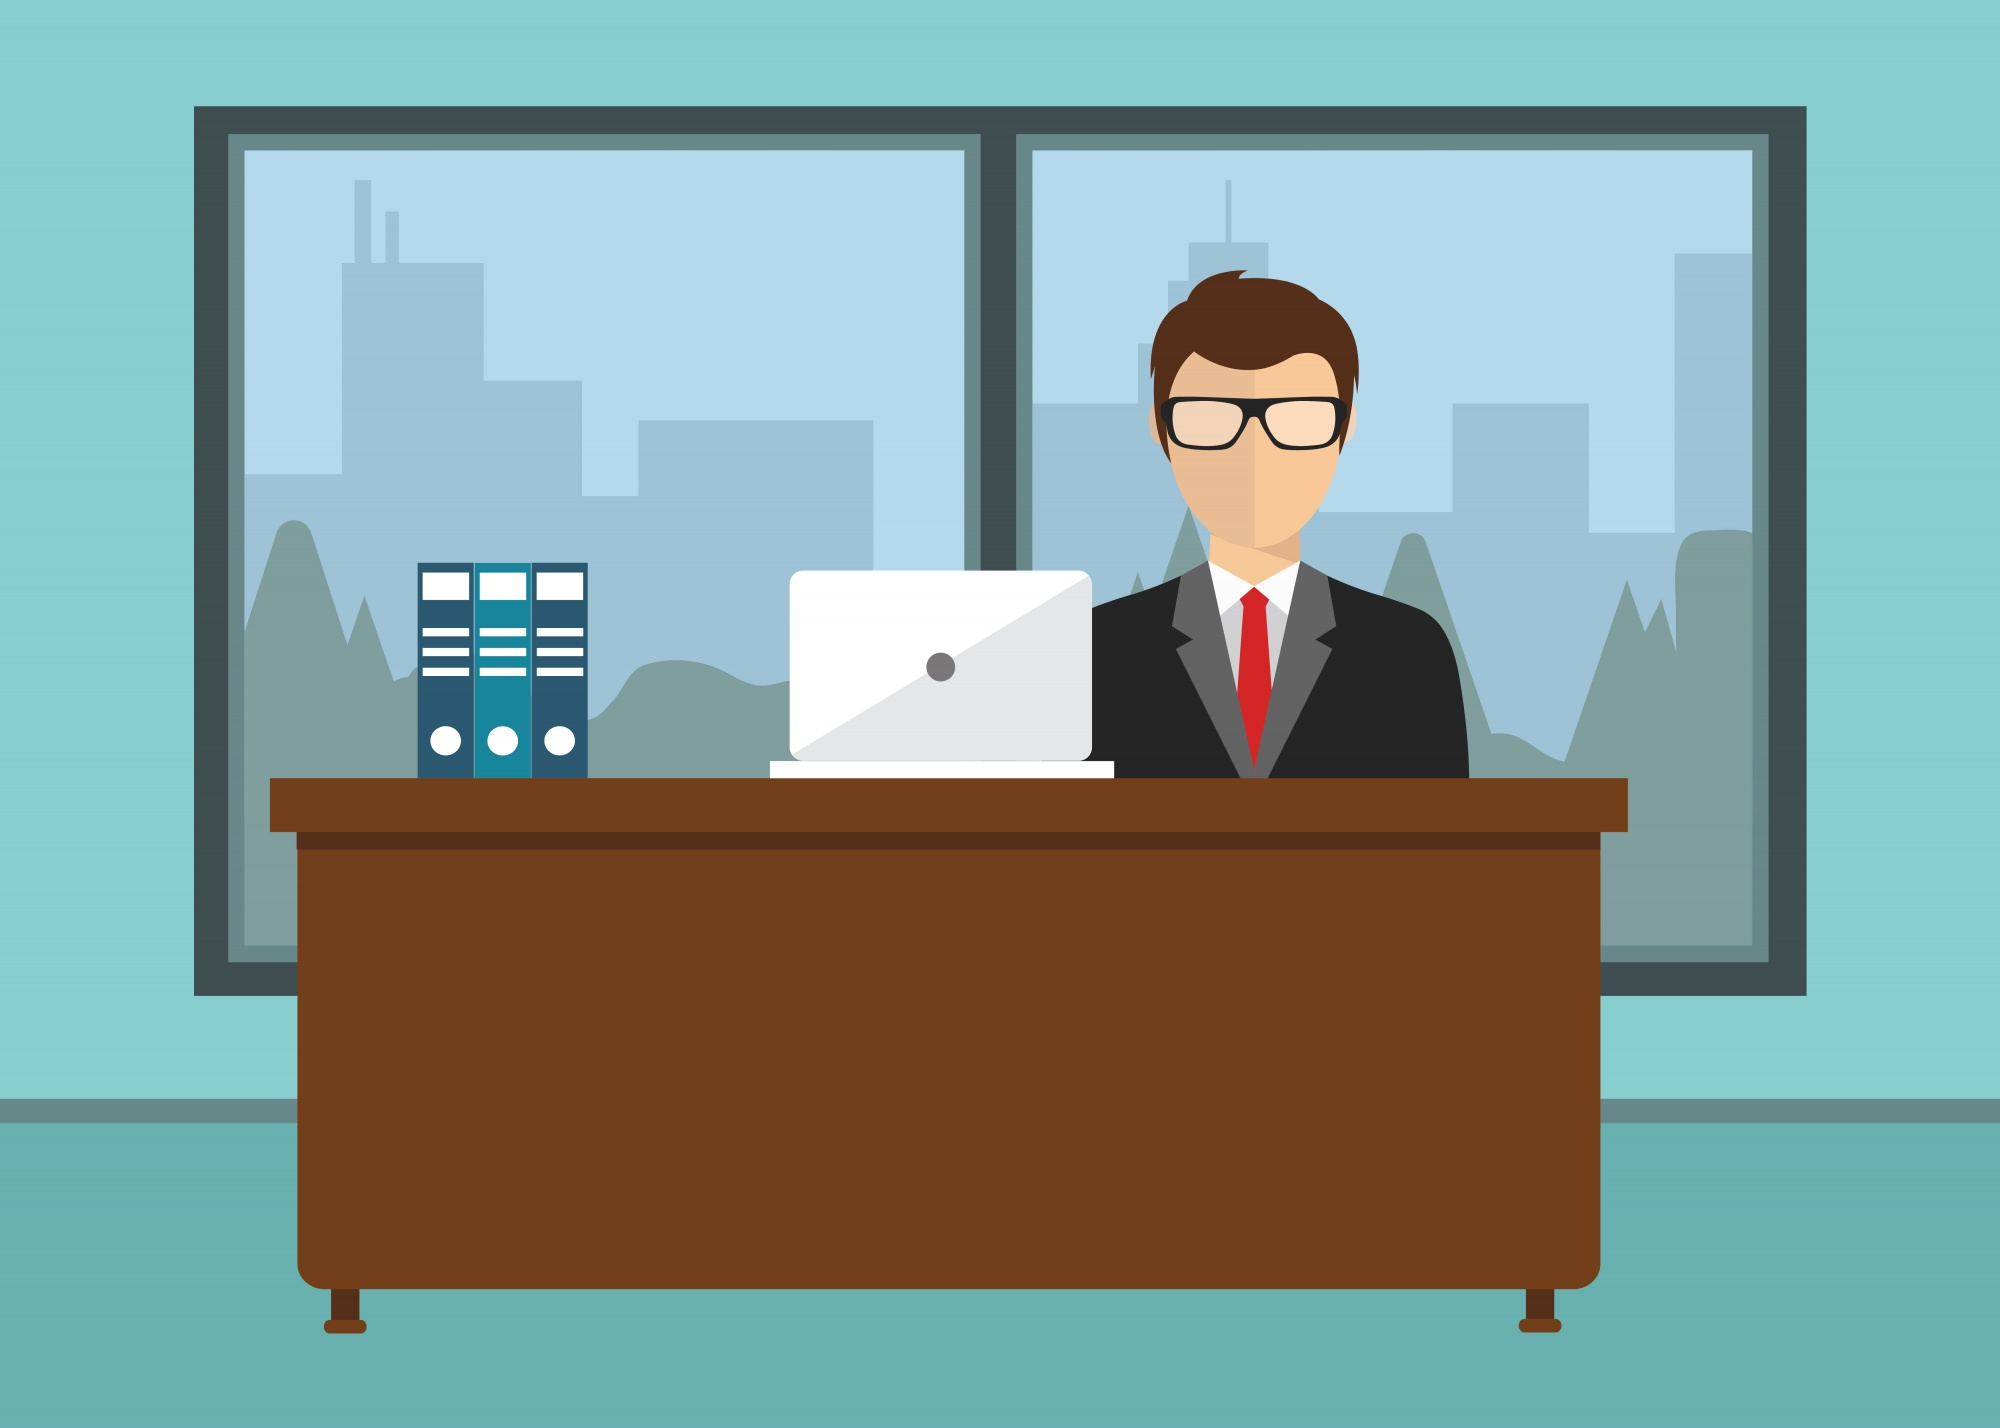 office desk images. businessman sitting in office desk images c